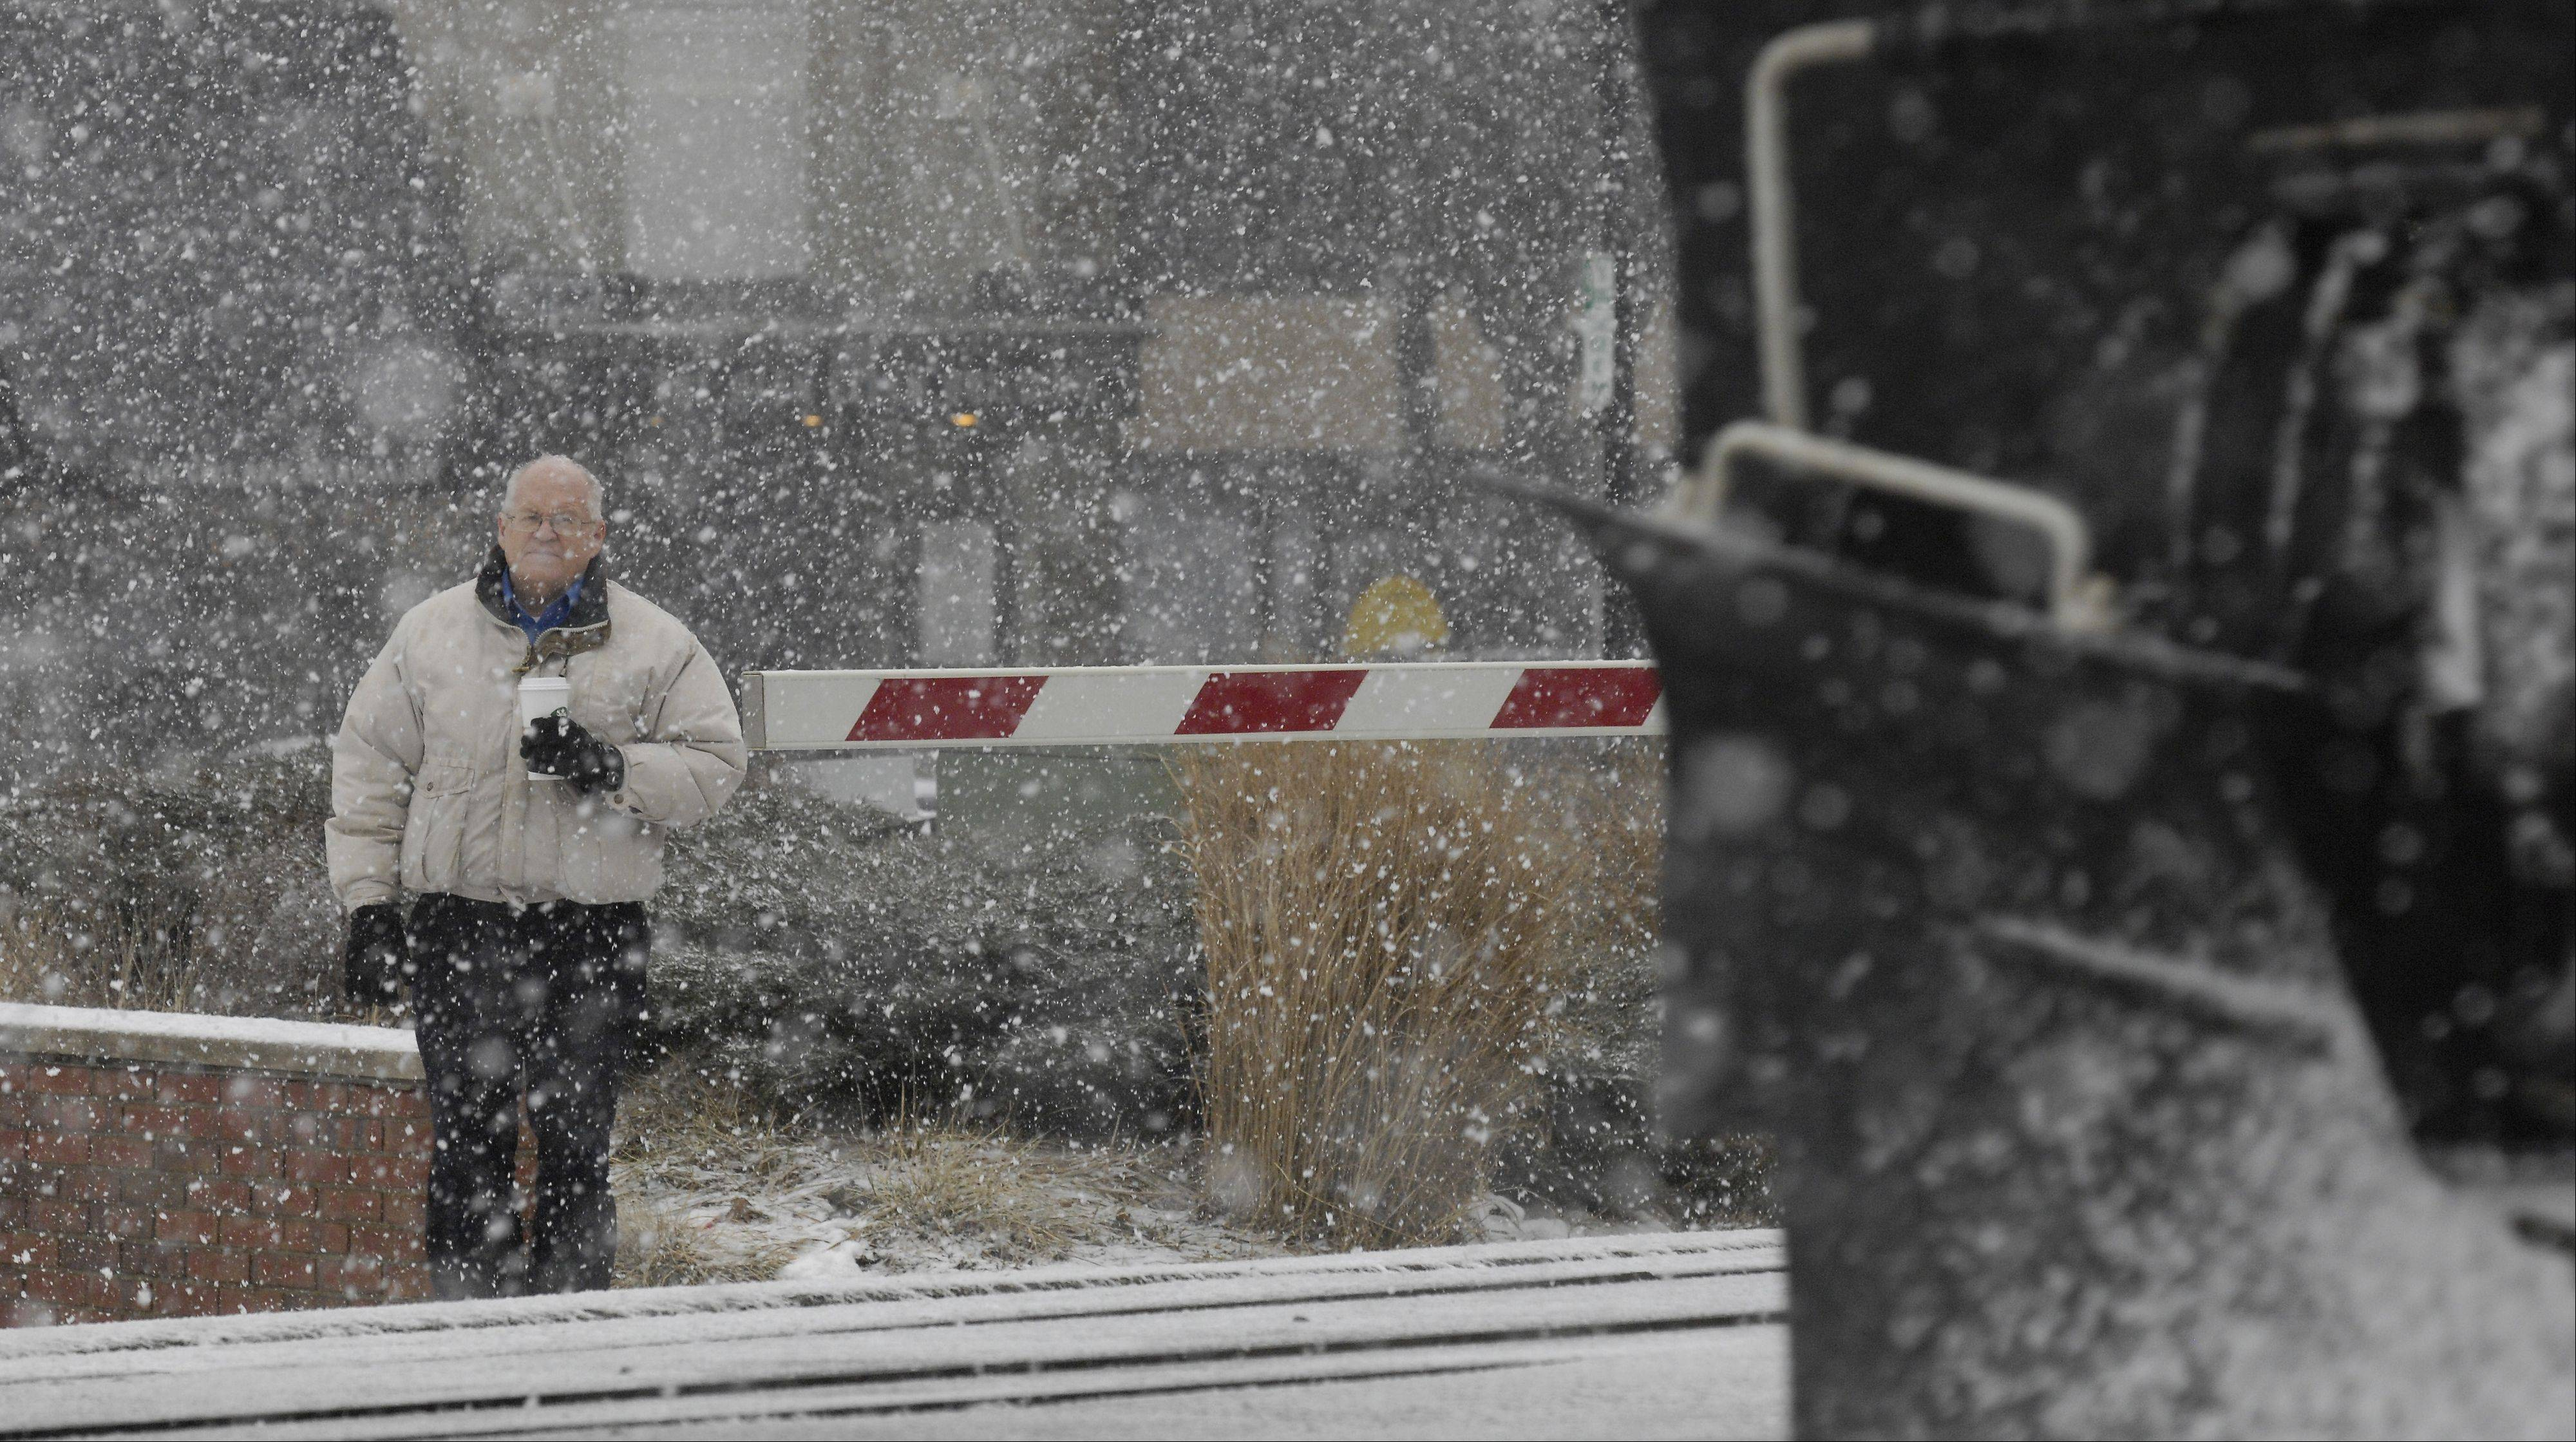 Mark Binkerd of Warrenville waits in the blowing snow and sleet for a train to pass, in Glen Ellyn, Tuesday morning.